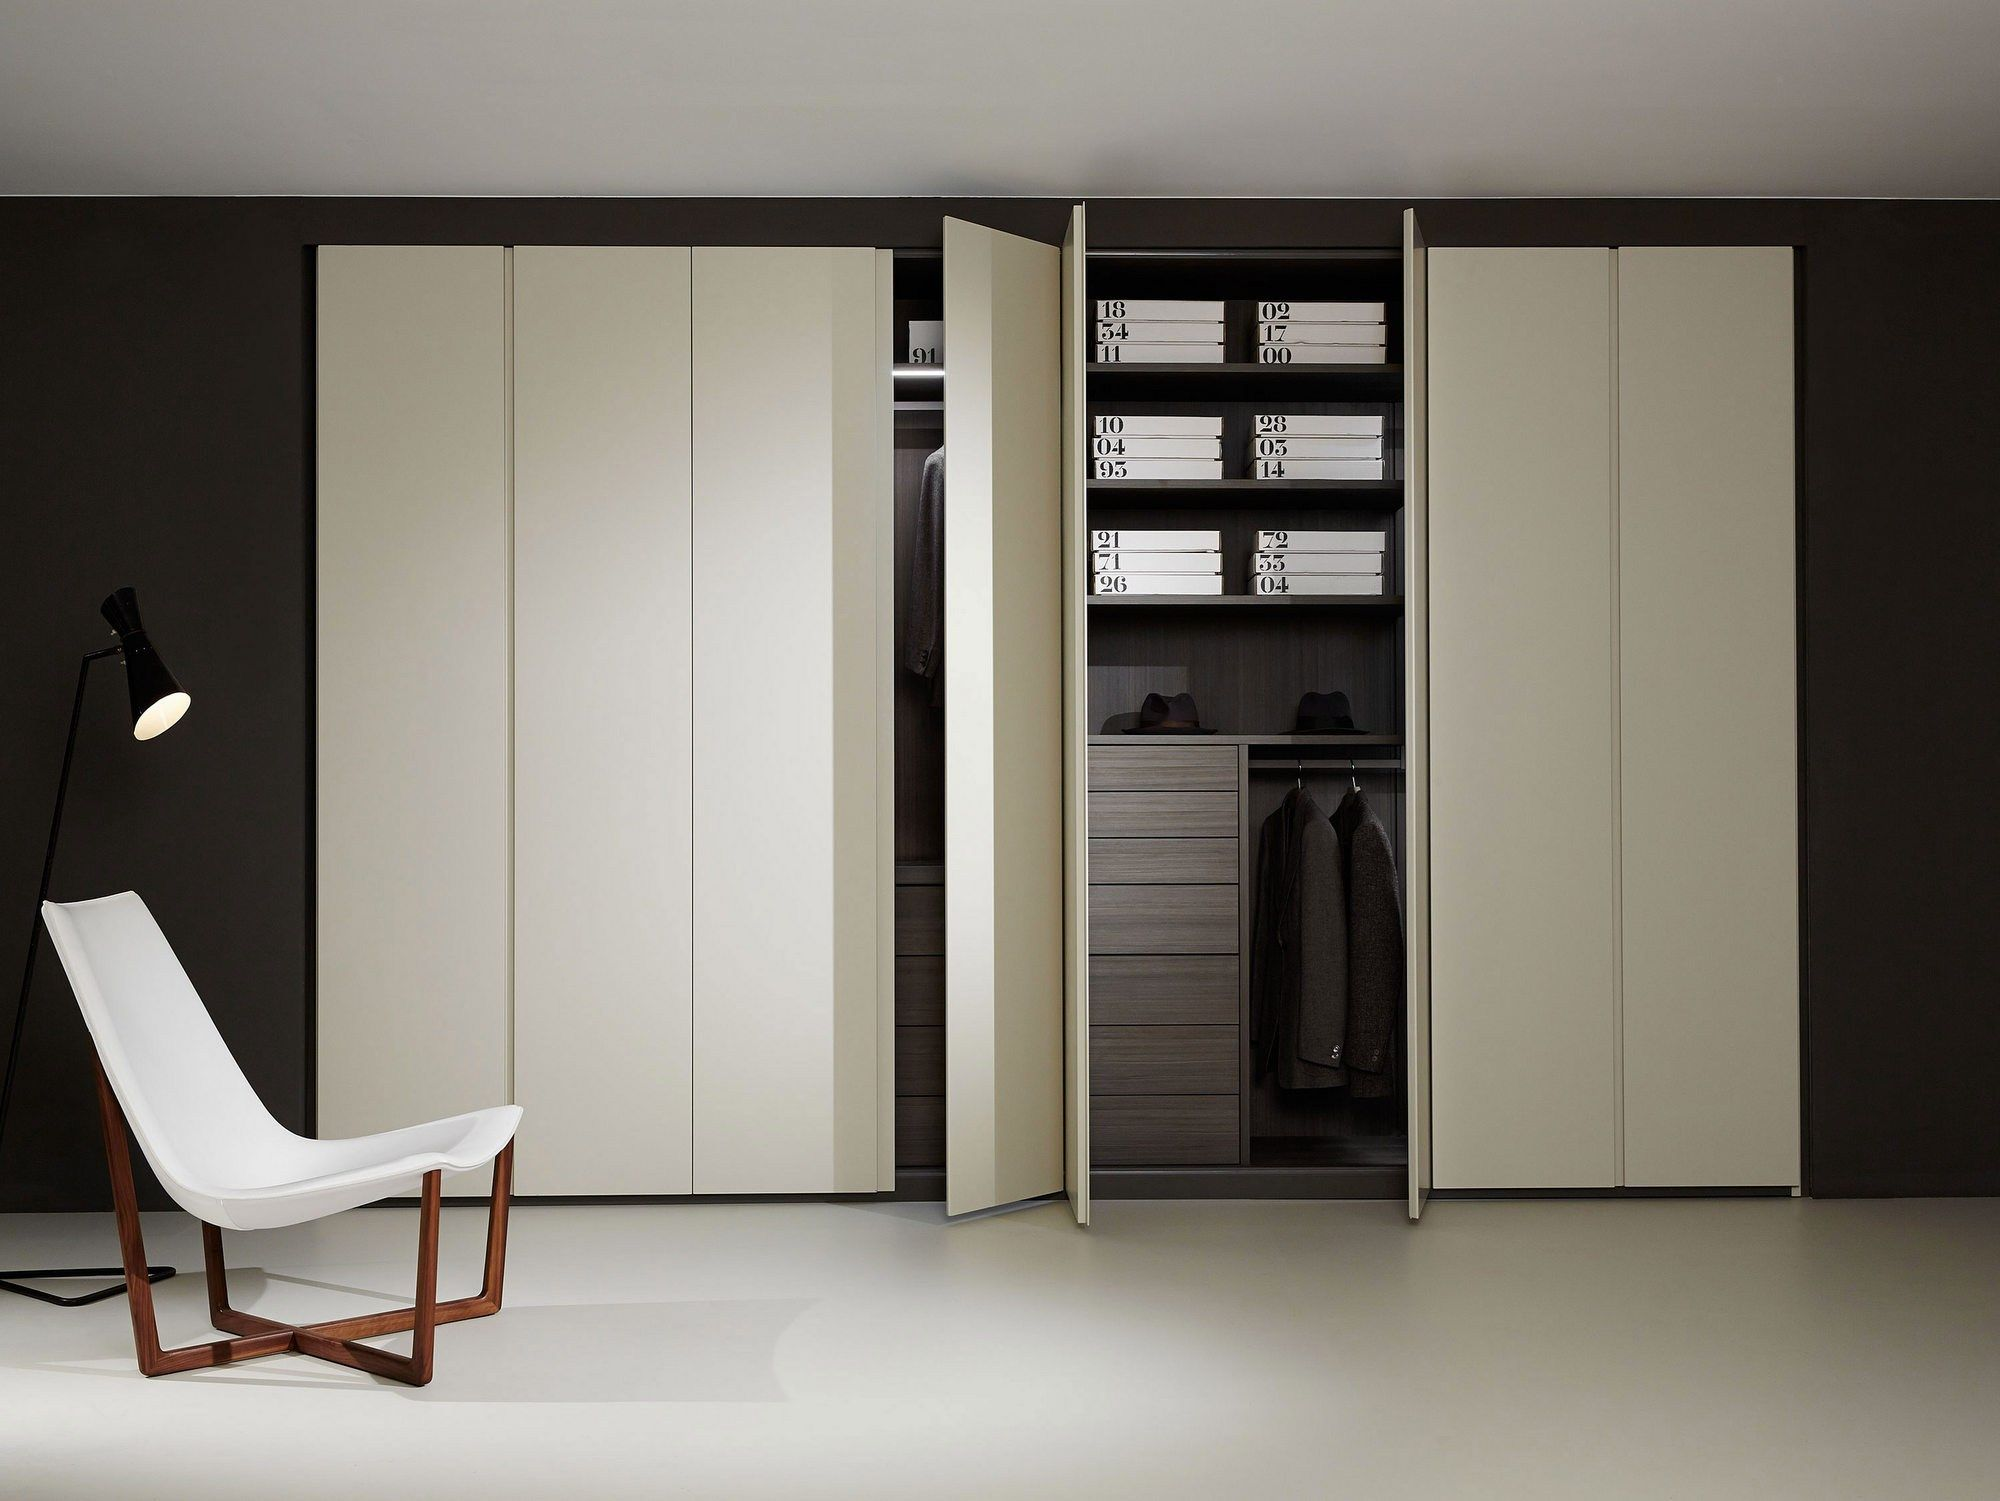 Kleiderschrank design  STORAGE Kleiderschrank Kollektion Storage by Porro Design Piero ...